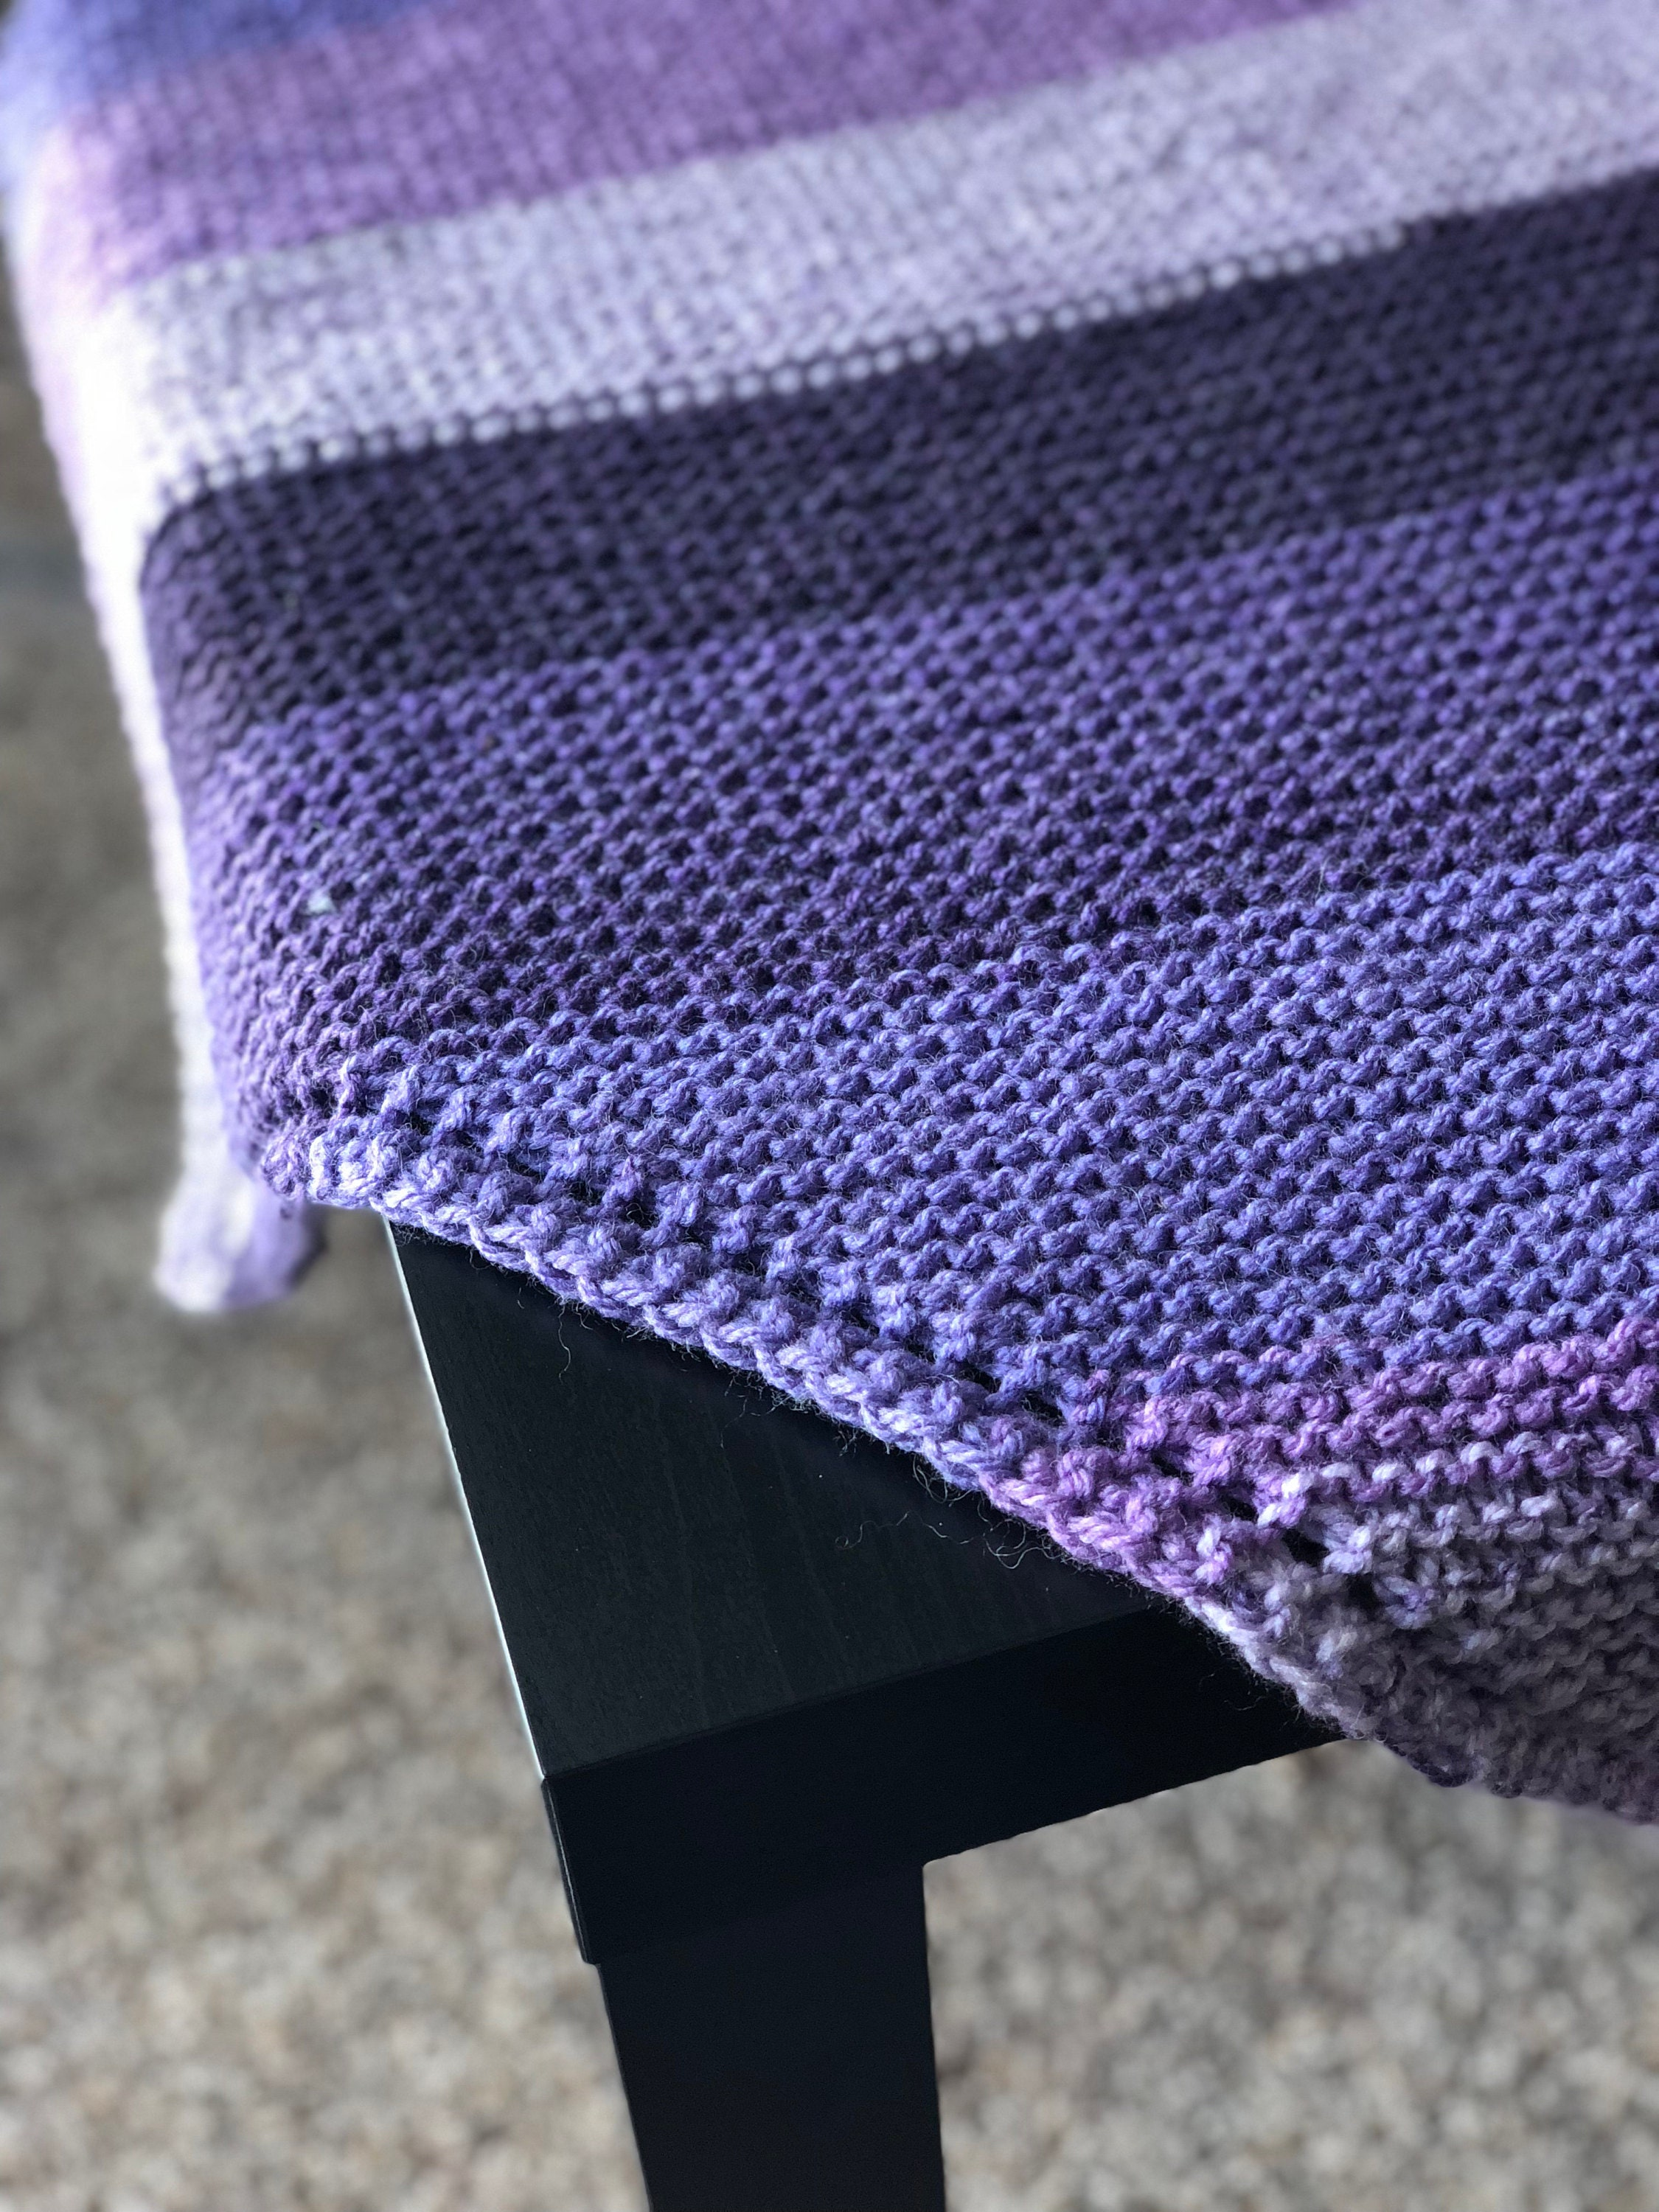 Purple shawl on a table